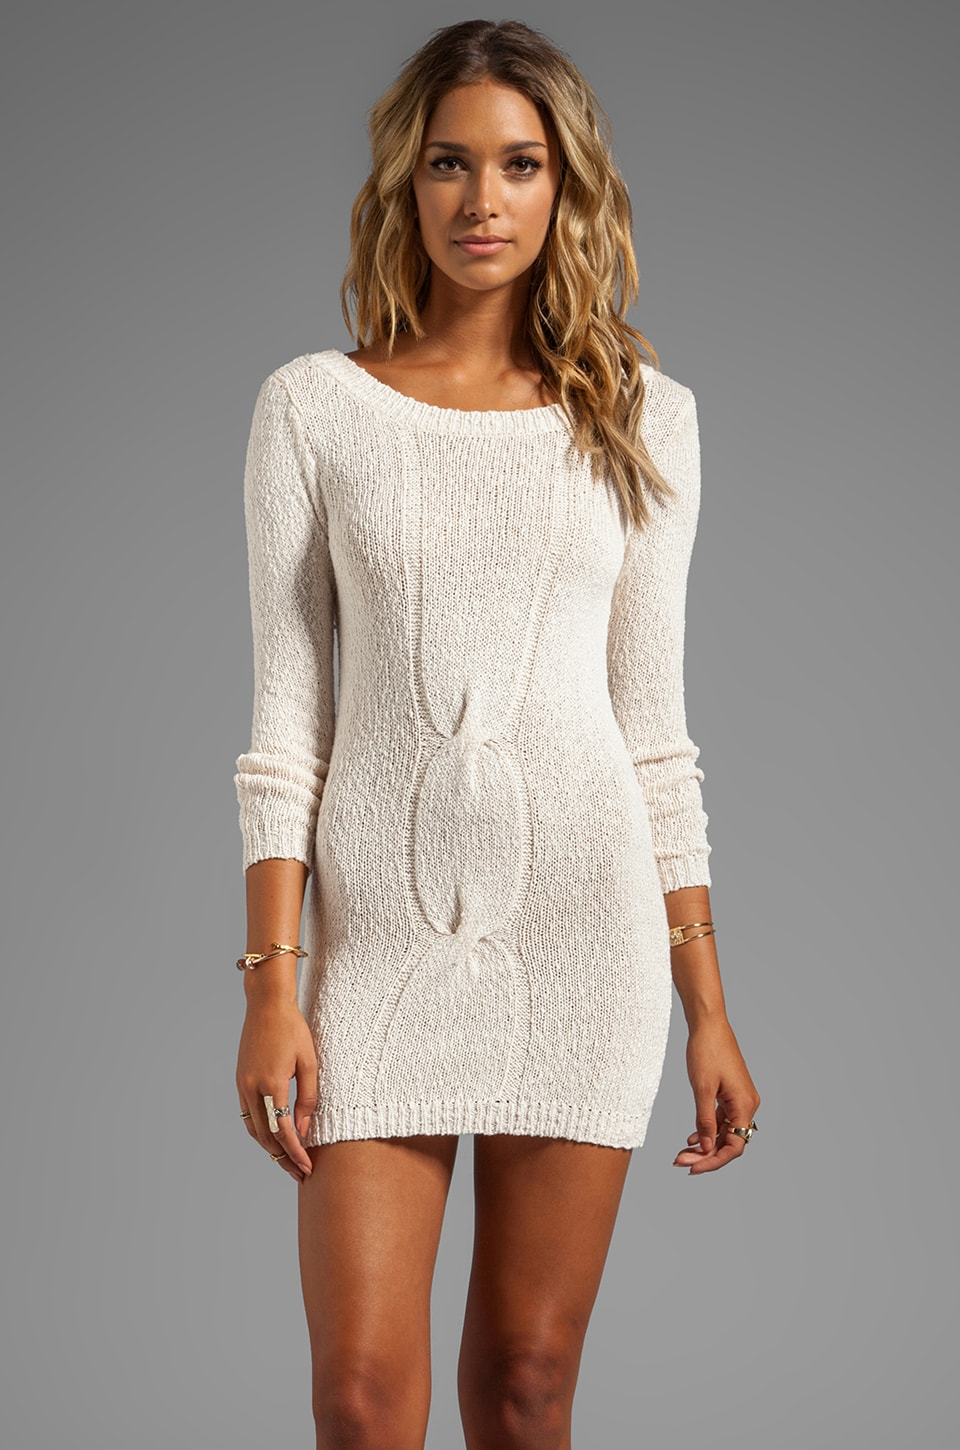 Eternal Sunshine Creations Margo Mini Dress in Ivory